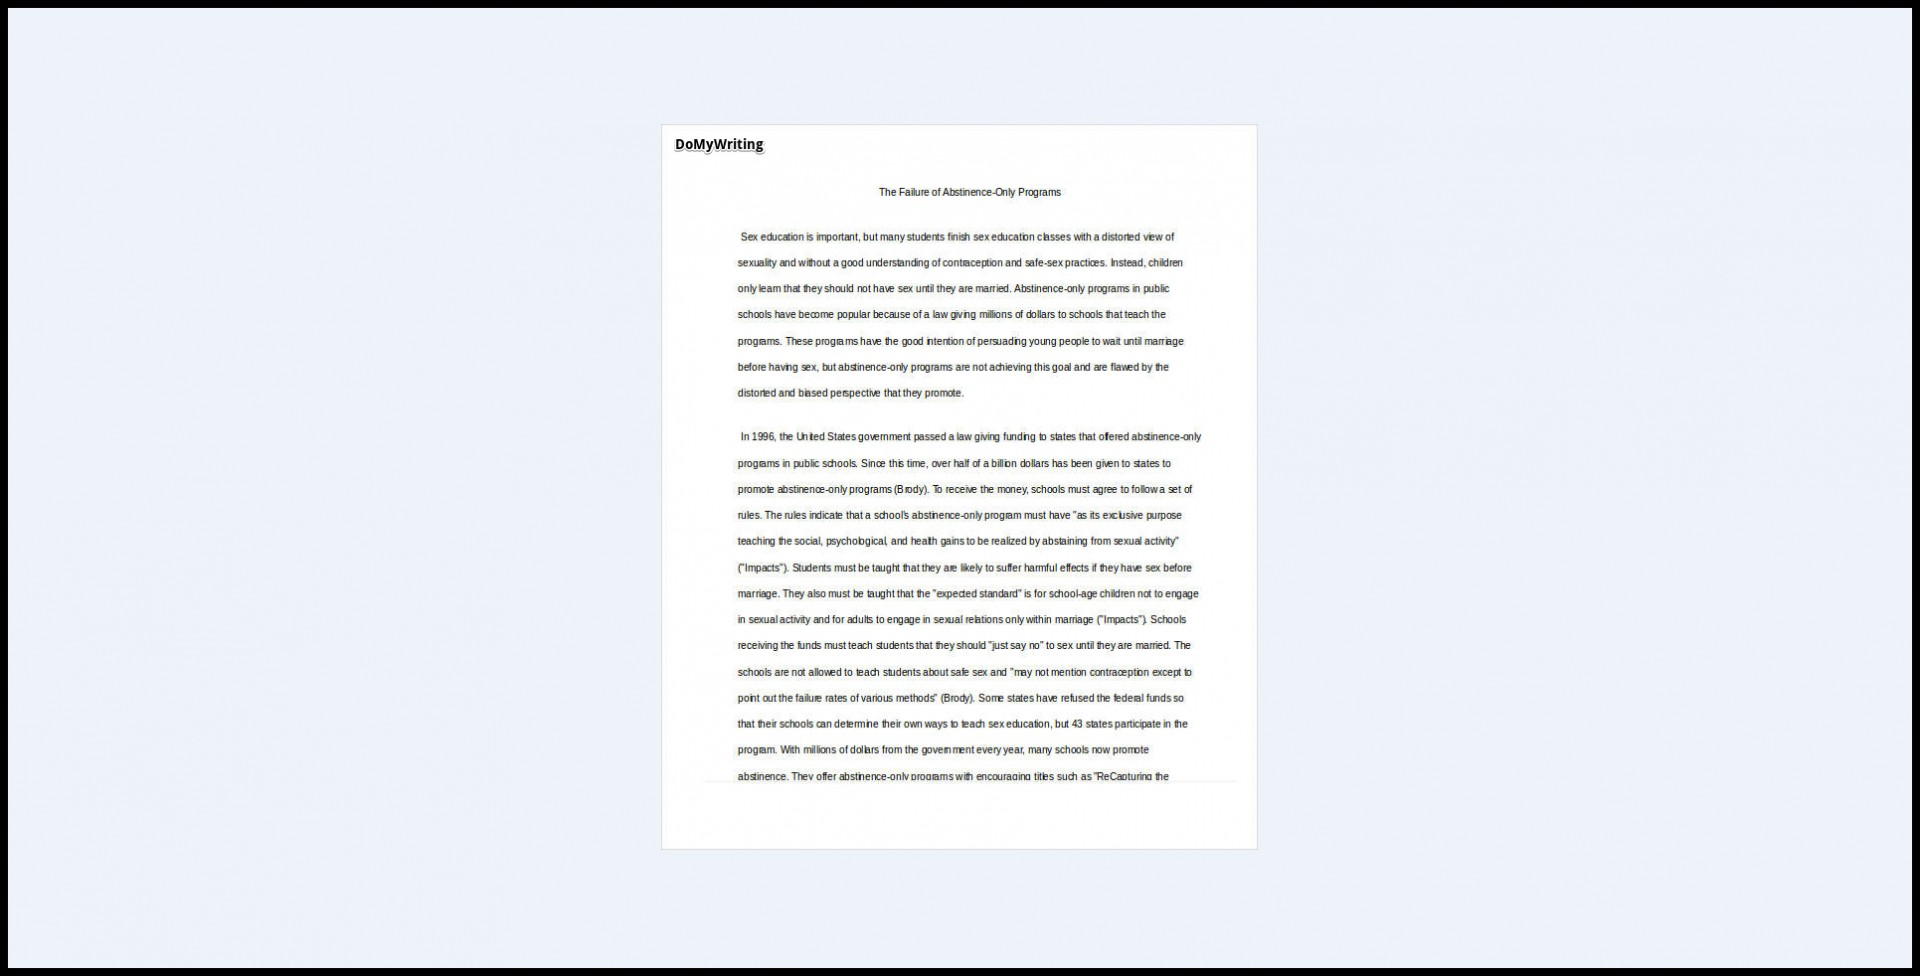 009 Persuasive Essay Definition Archaicawful Pdf Literary Wikipedia 1920